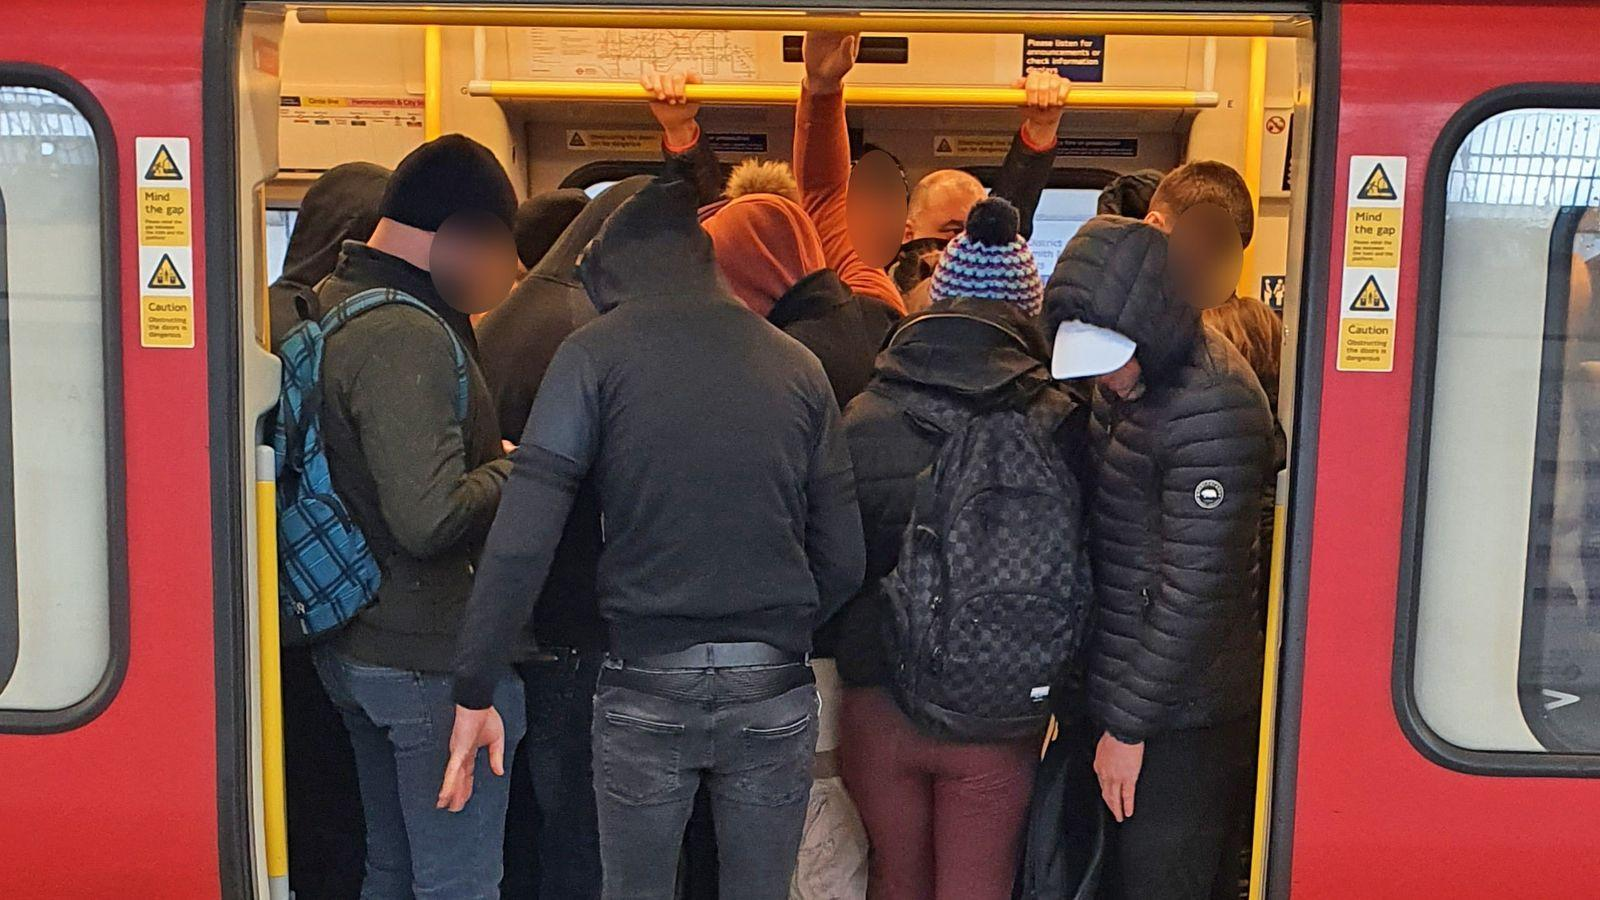 A packed train in London on Monday, when an Italian expert says the UK should have been locked down